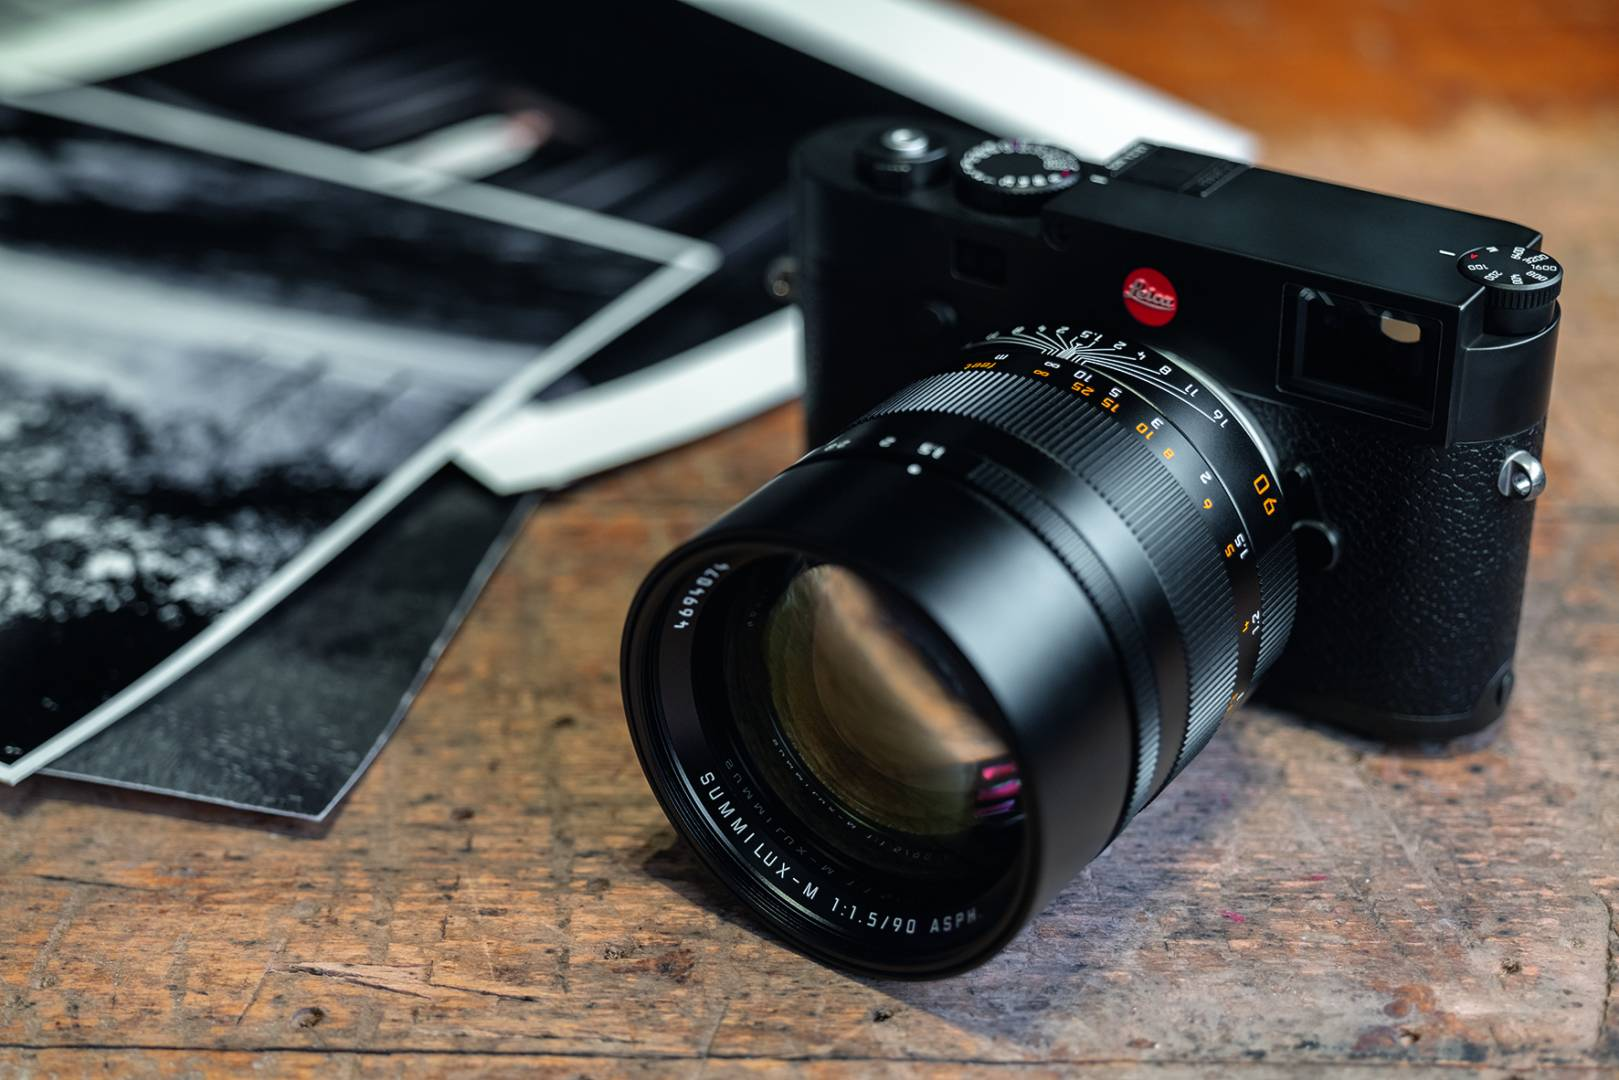 Leica Summilux-M 90mm f/1.5 ASPH announced